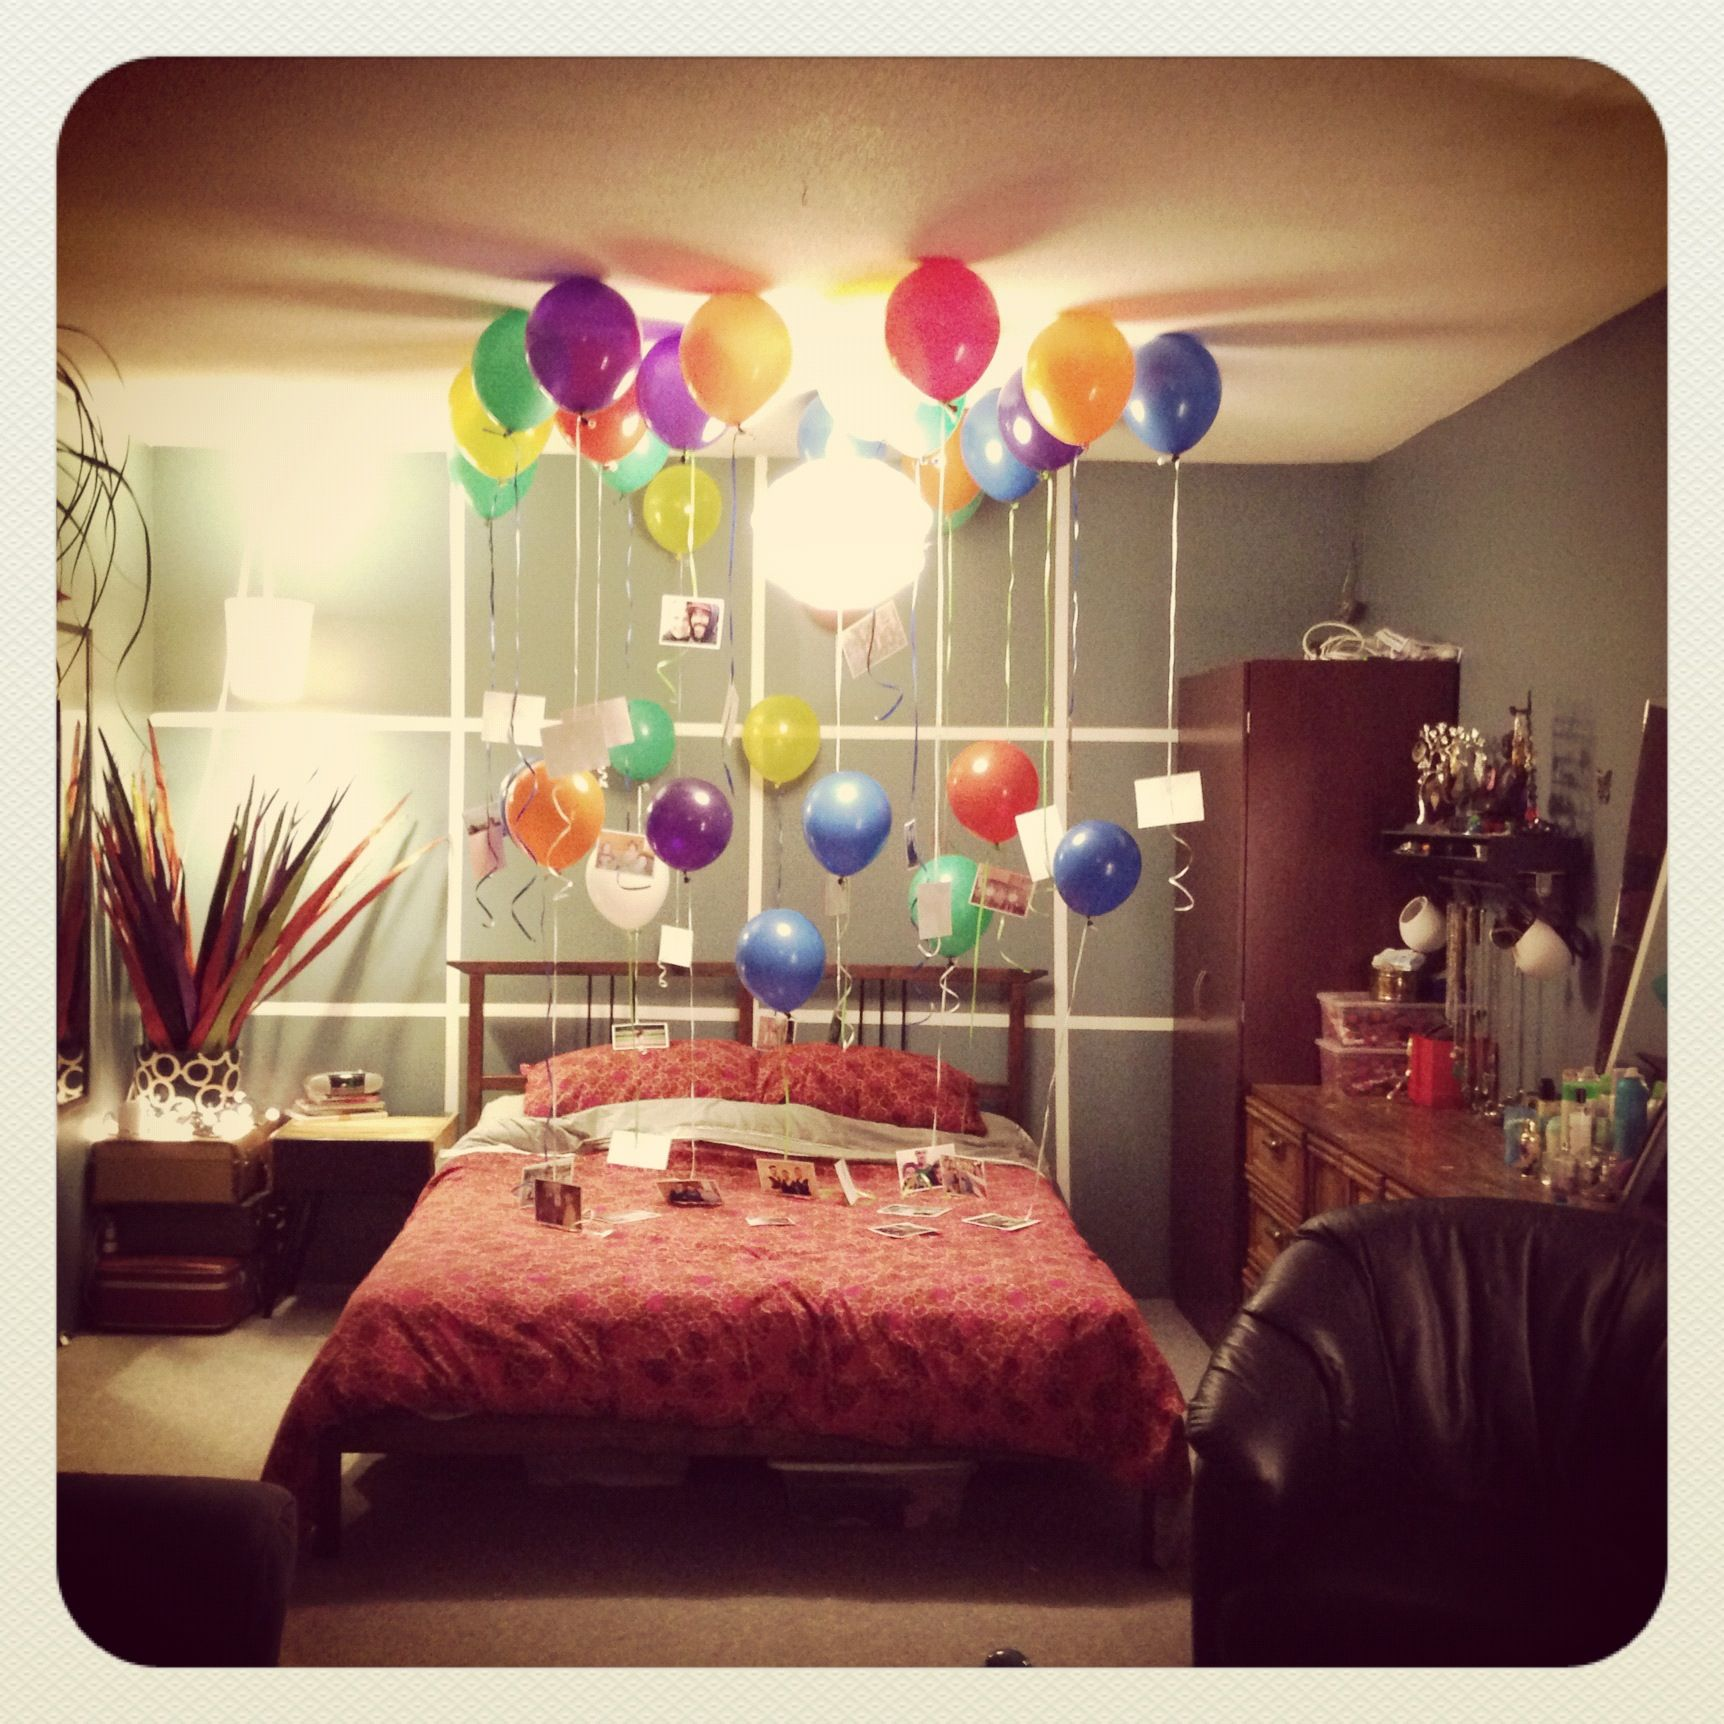 Birthday Surprise for the Boyfriend Good ideas ya say